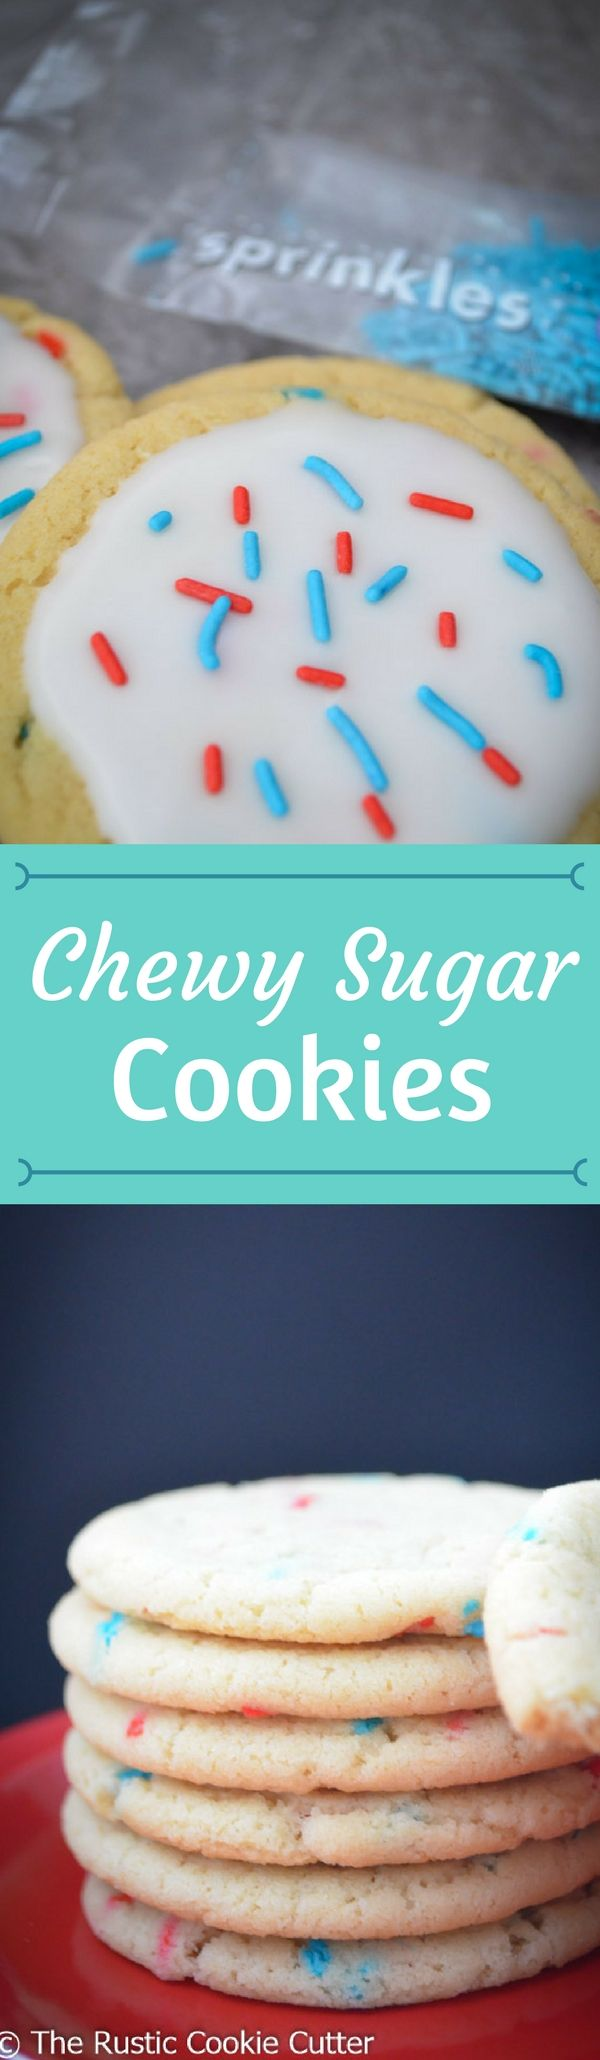 Chewy Sugar Cookies - They're good any way you make them!  Frosted or unfrosted.  Colored or not.  Sprinkled or plain.  Sandwiches or singles.